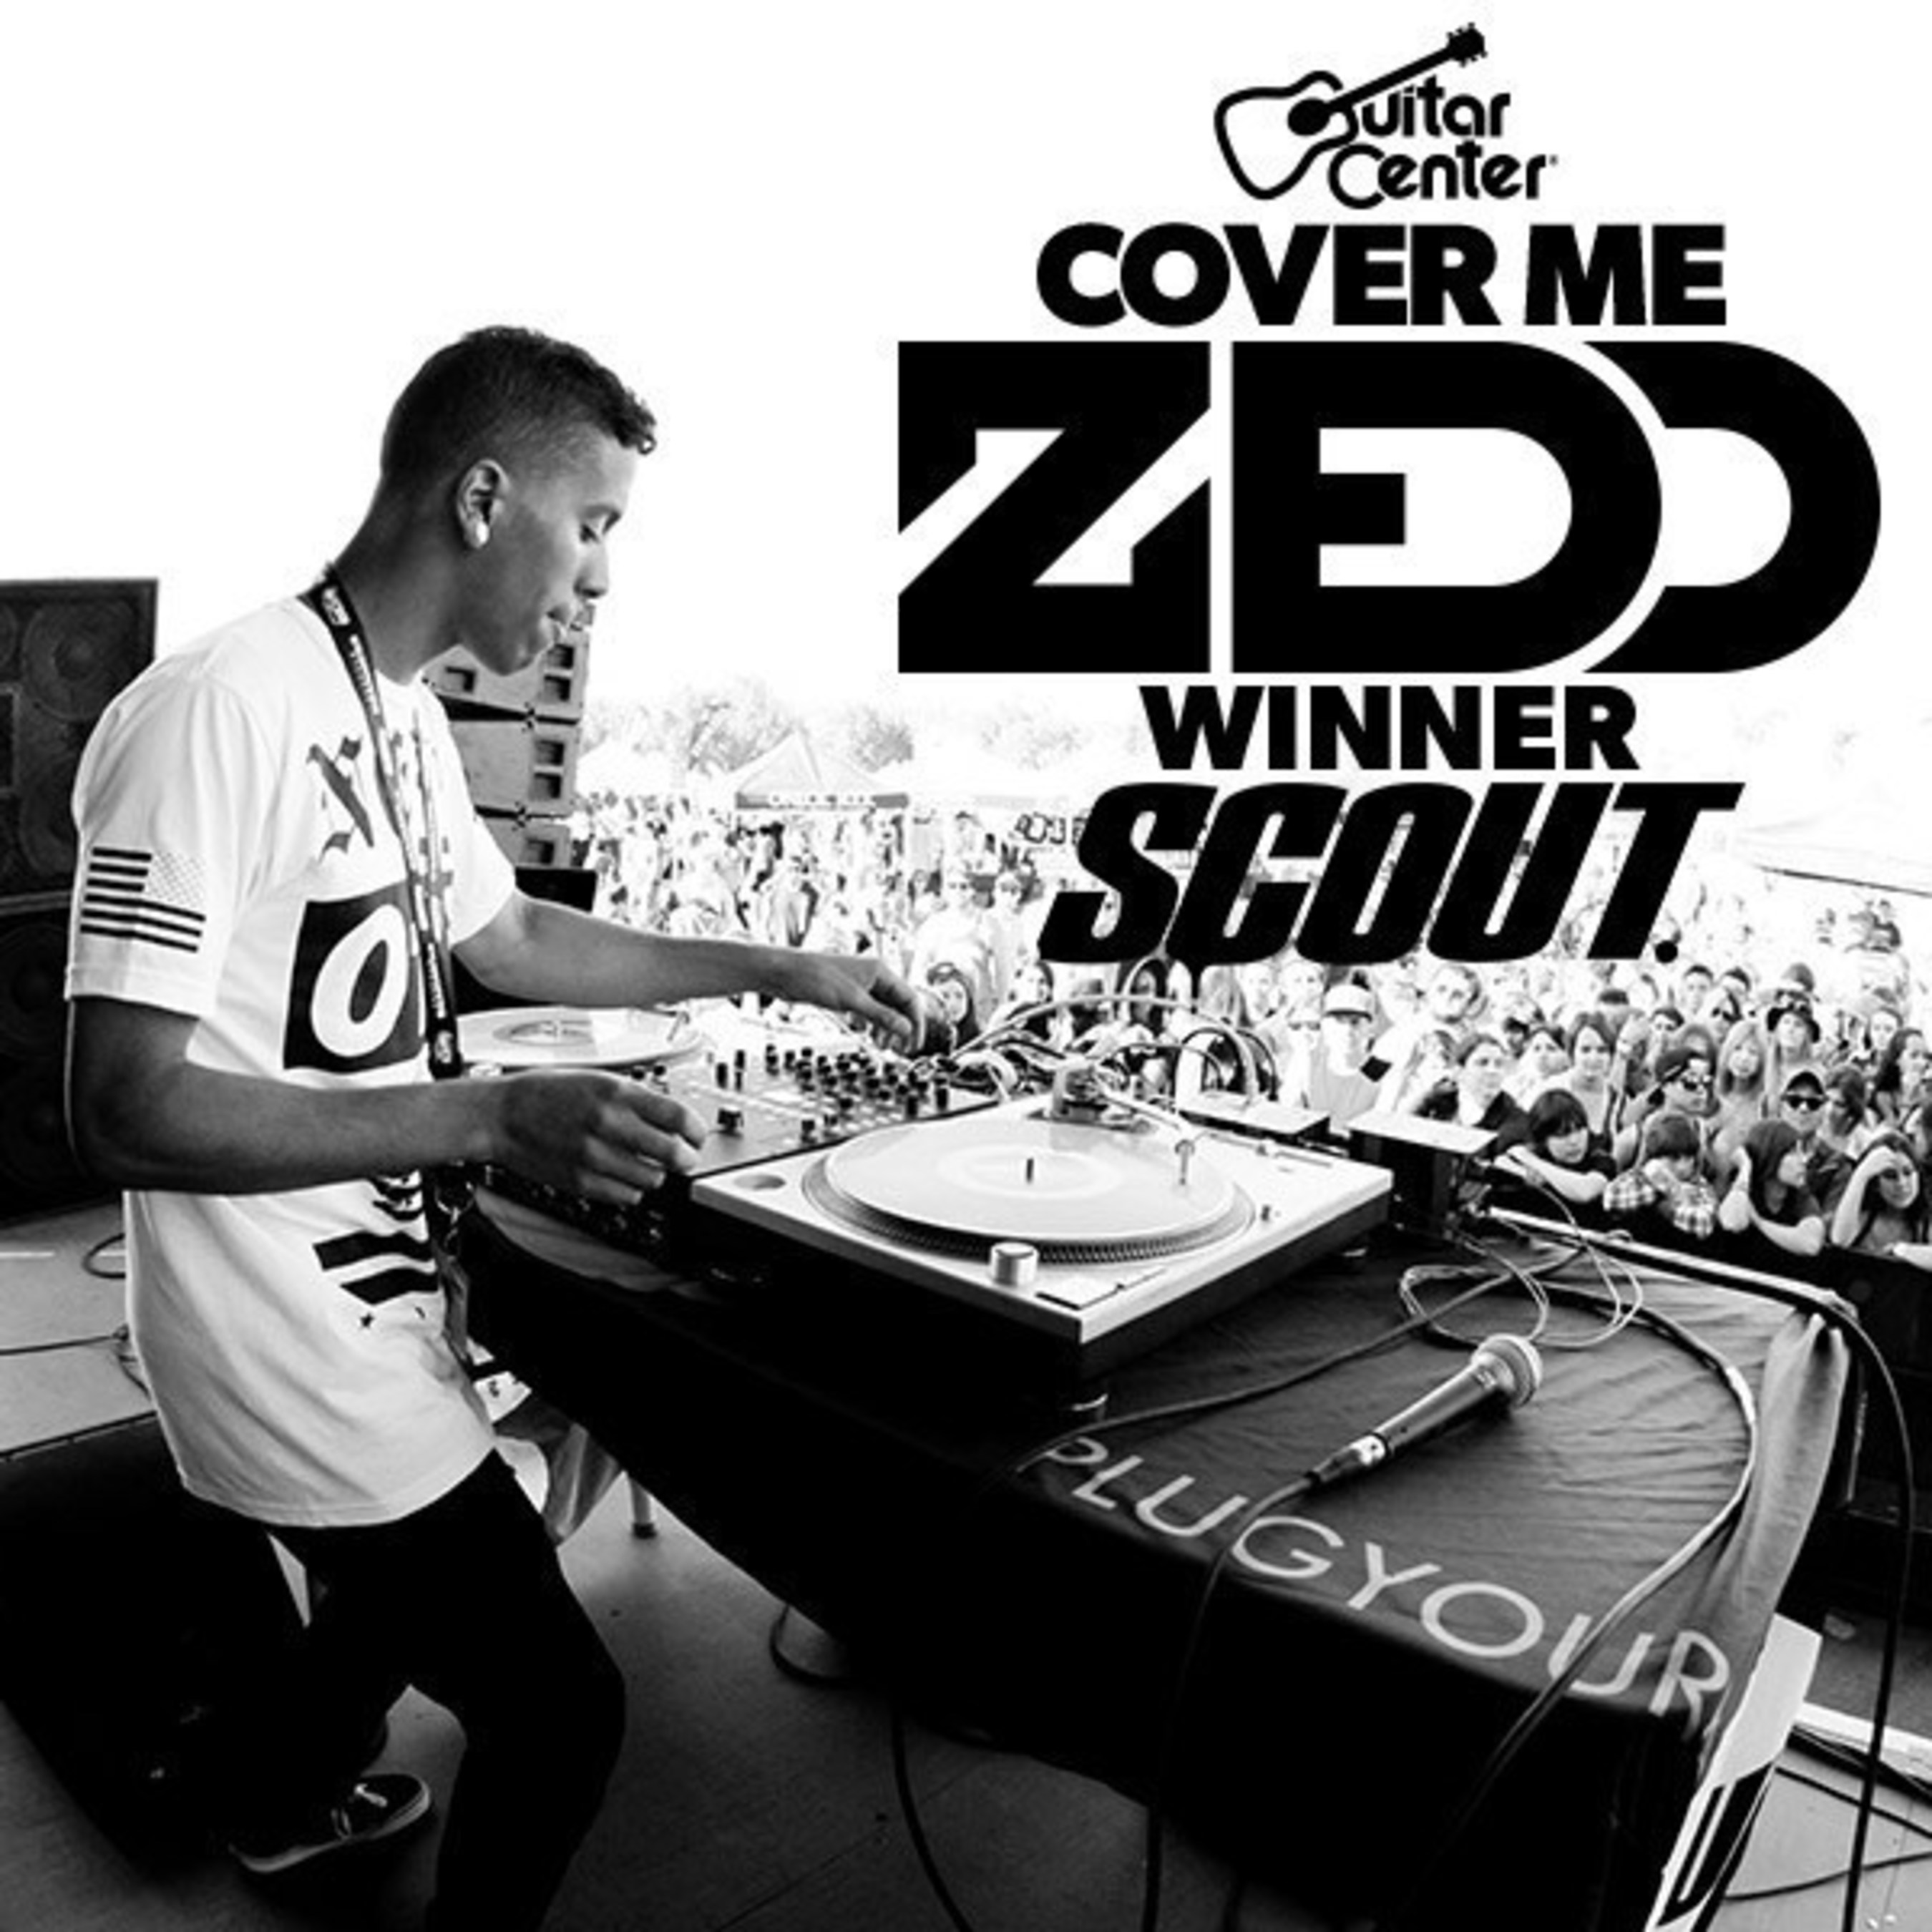 Zedd Names Scout Winner Of Guitar Center's Cover Me And Announces Scout's Winning 'I Want You To Know' Remix Will Be Released September 4th Via Interscope Records